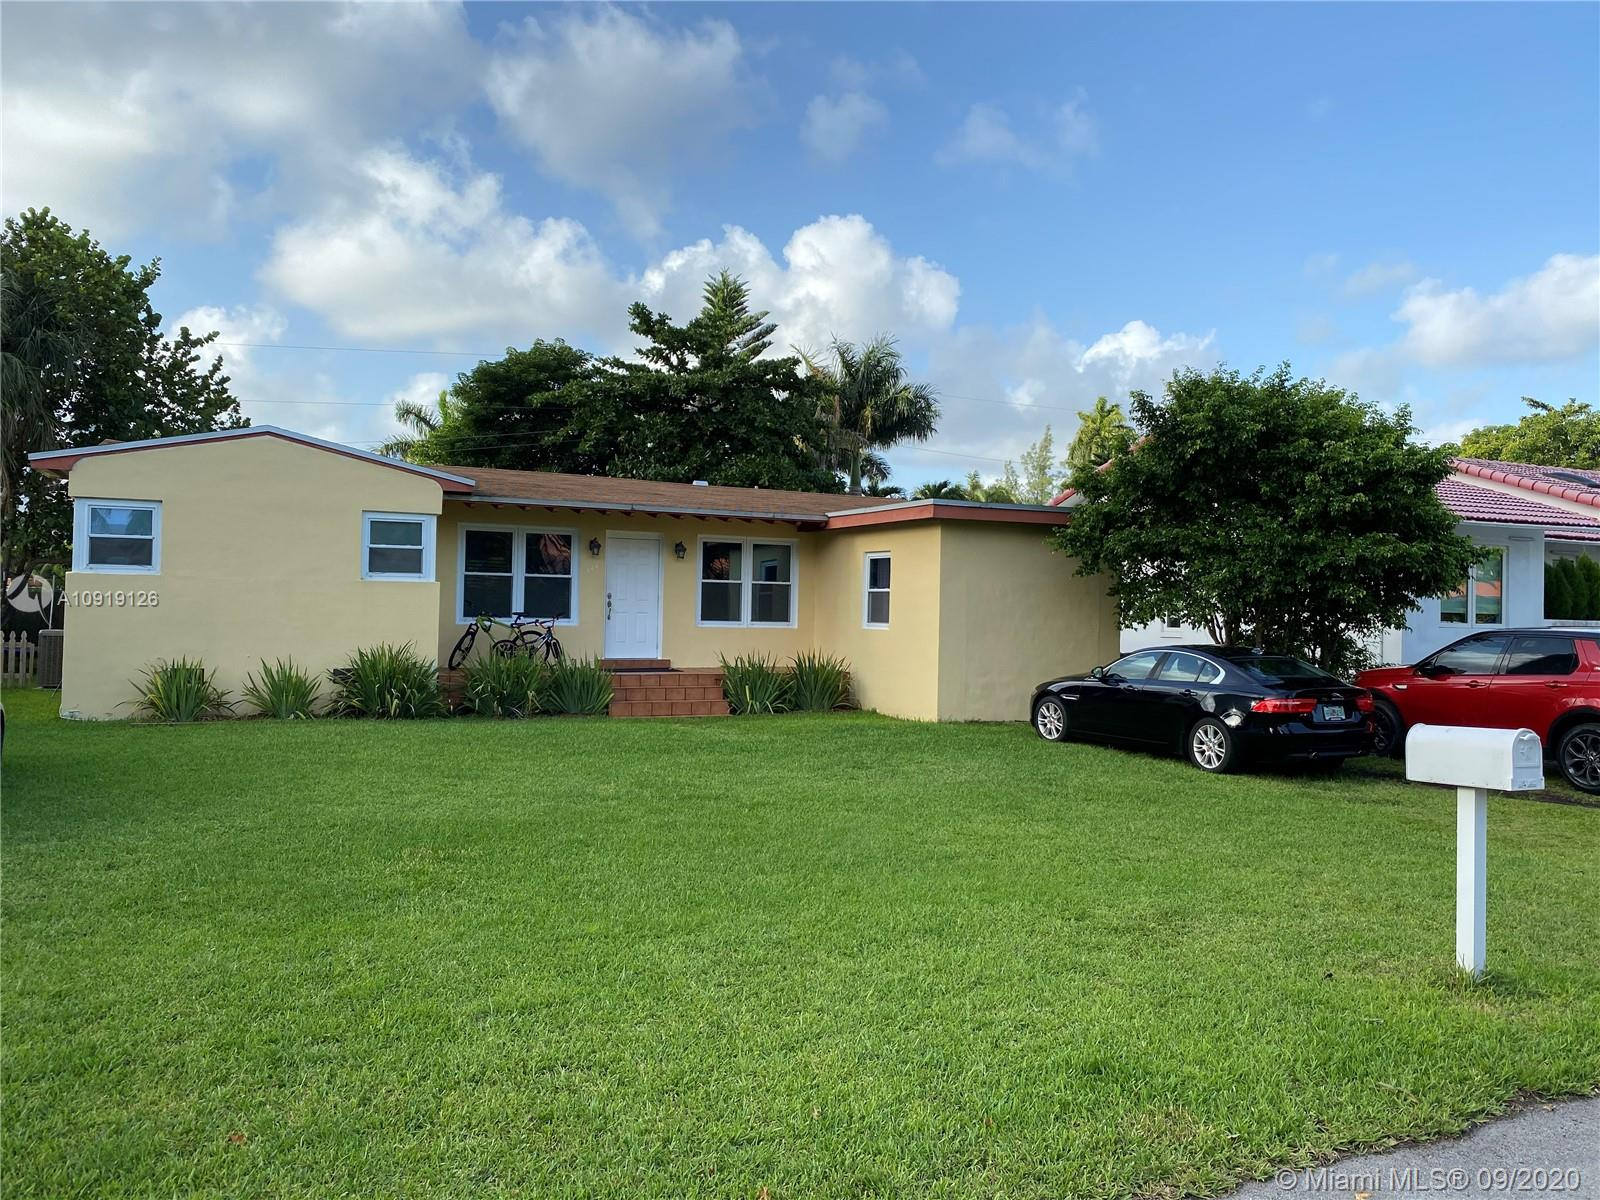 220  191st Ter  For Sale A10919126, FL